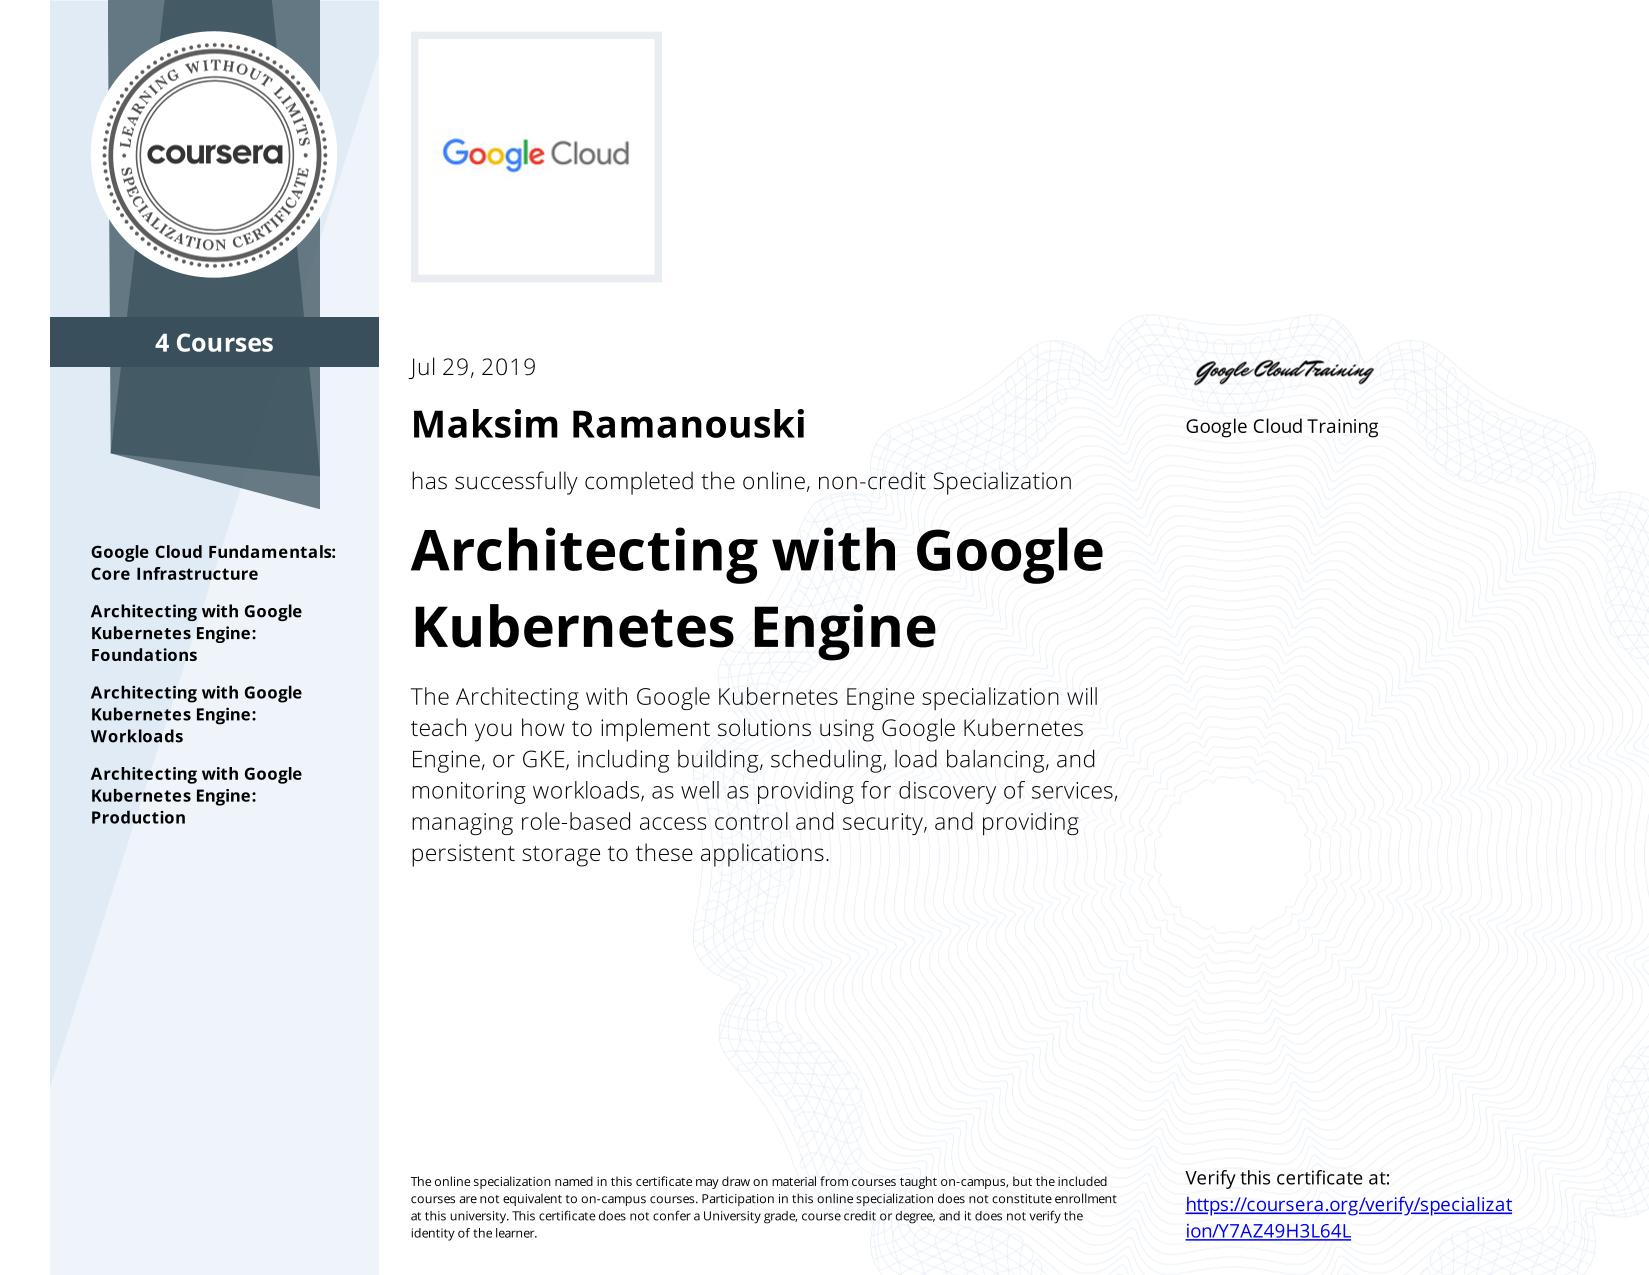 View certificate for Maksim Ramanouski, Architecting with Google Kubernetes Engine, offered through Coursera. The Architecting with Google Kubernetes Engine specialization will teach you how to implement solutions using Google Kubernetes Engine, or GKE, including building, scheduling, load balancing, and monitoring workloads, as well as providing for discovery of services, managing role-based access control and security, and providing persistent storage to these applications.